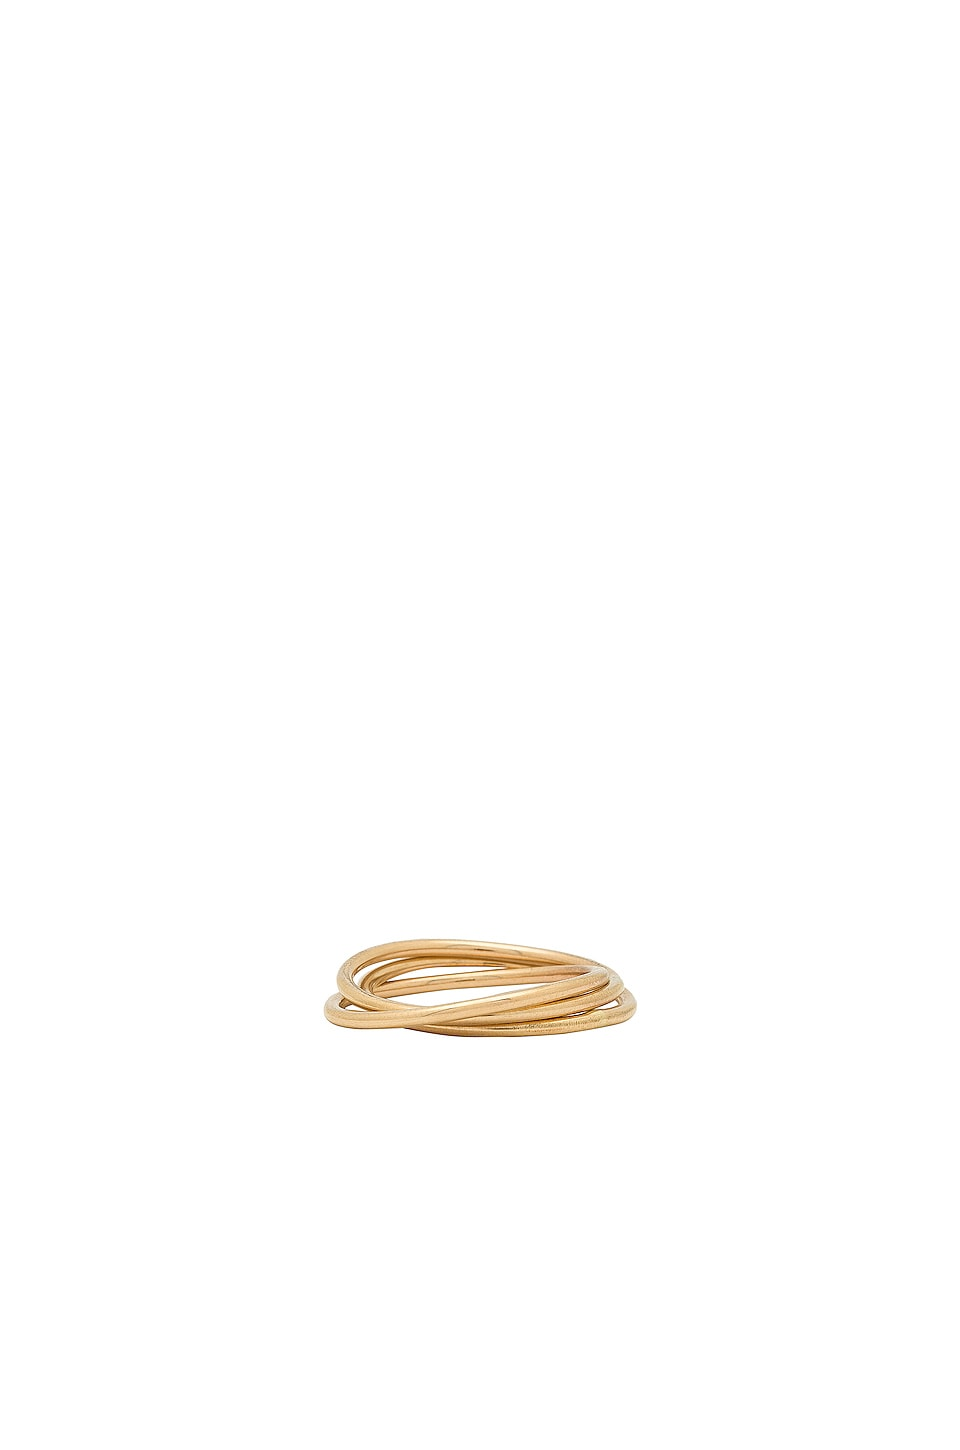 PARADIGM INTERLOCKING RING